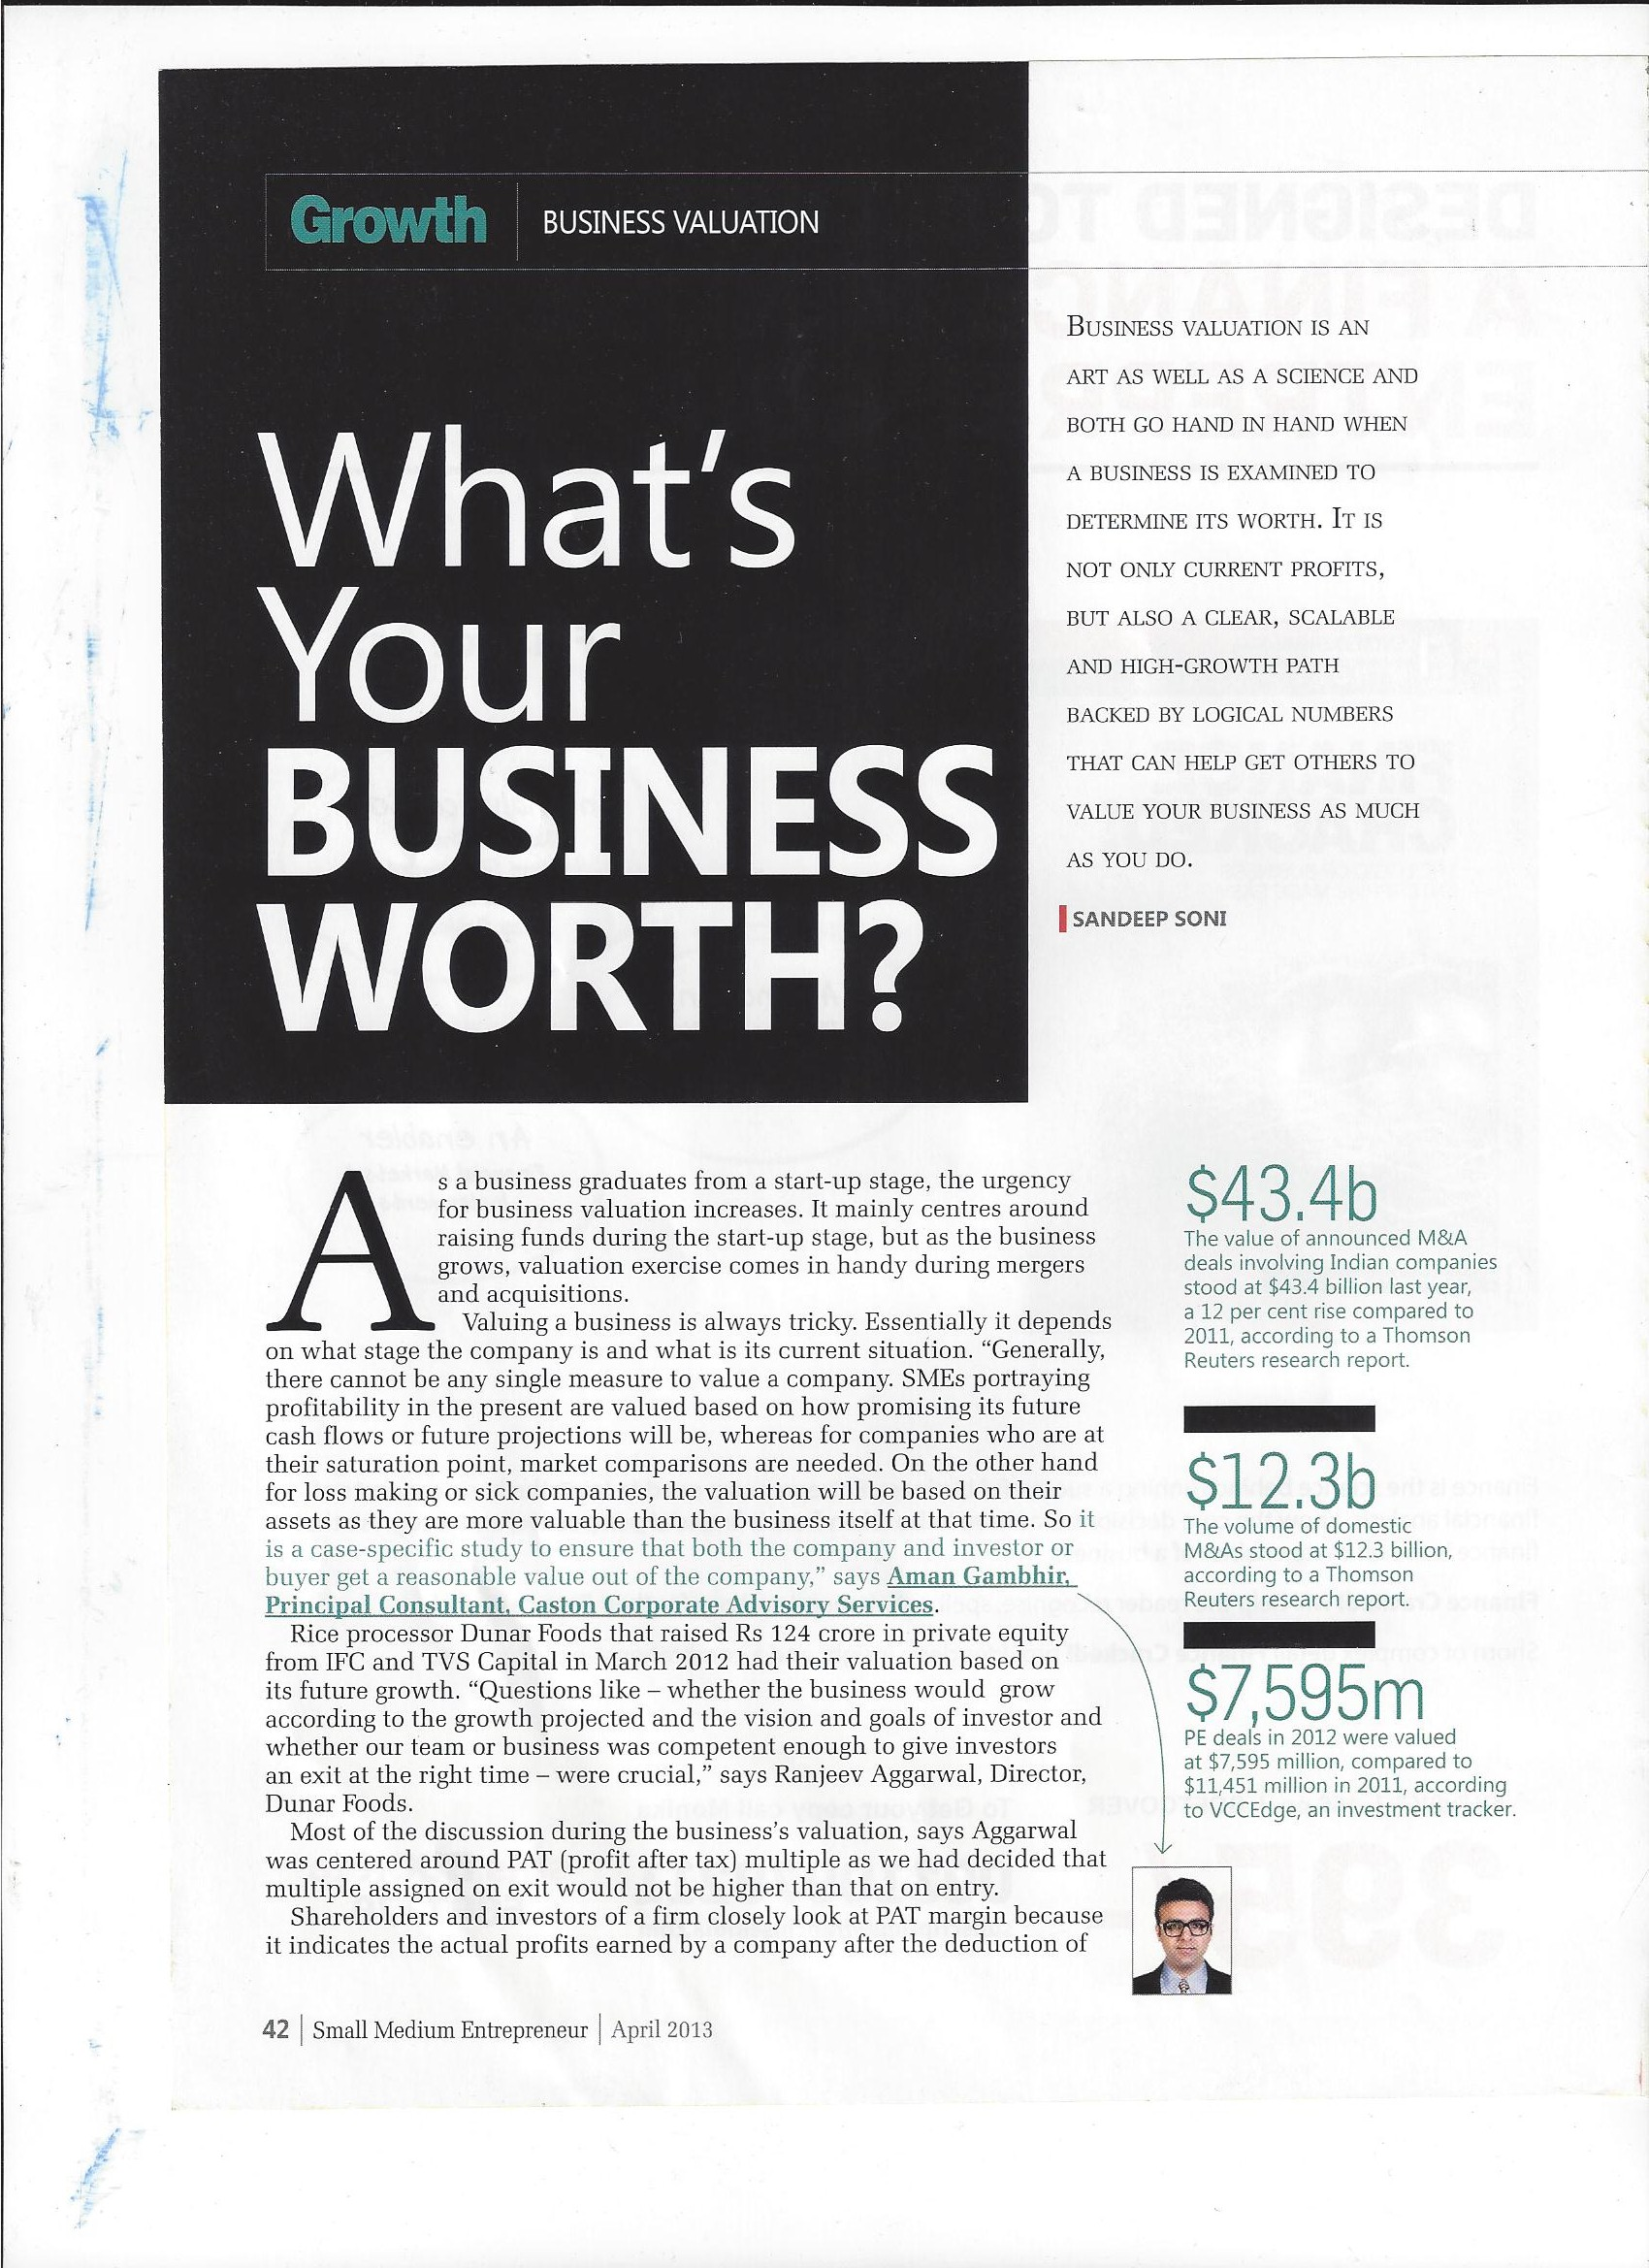 An Interface with Small Medium Entrepreneur Magazine